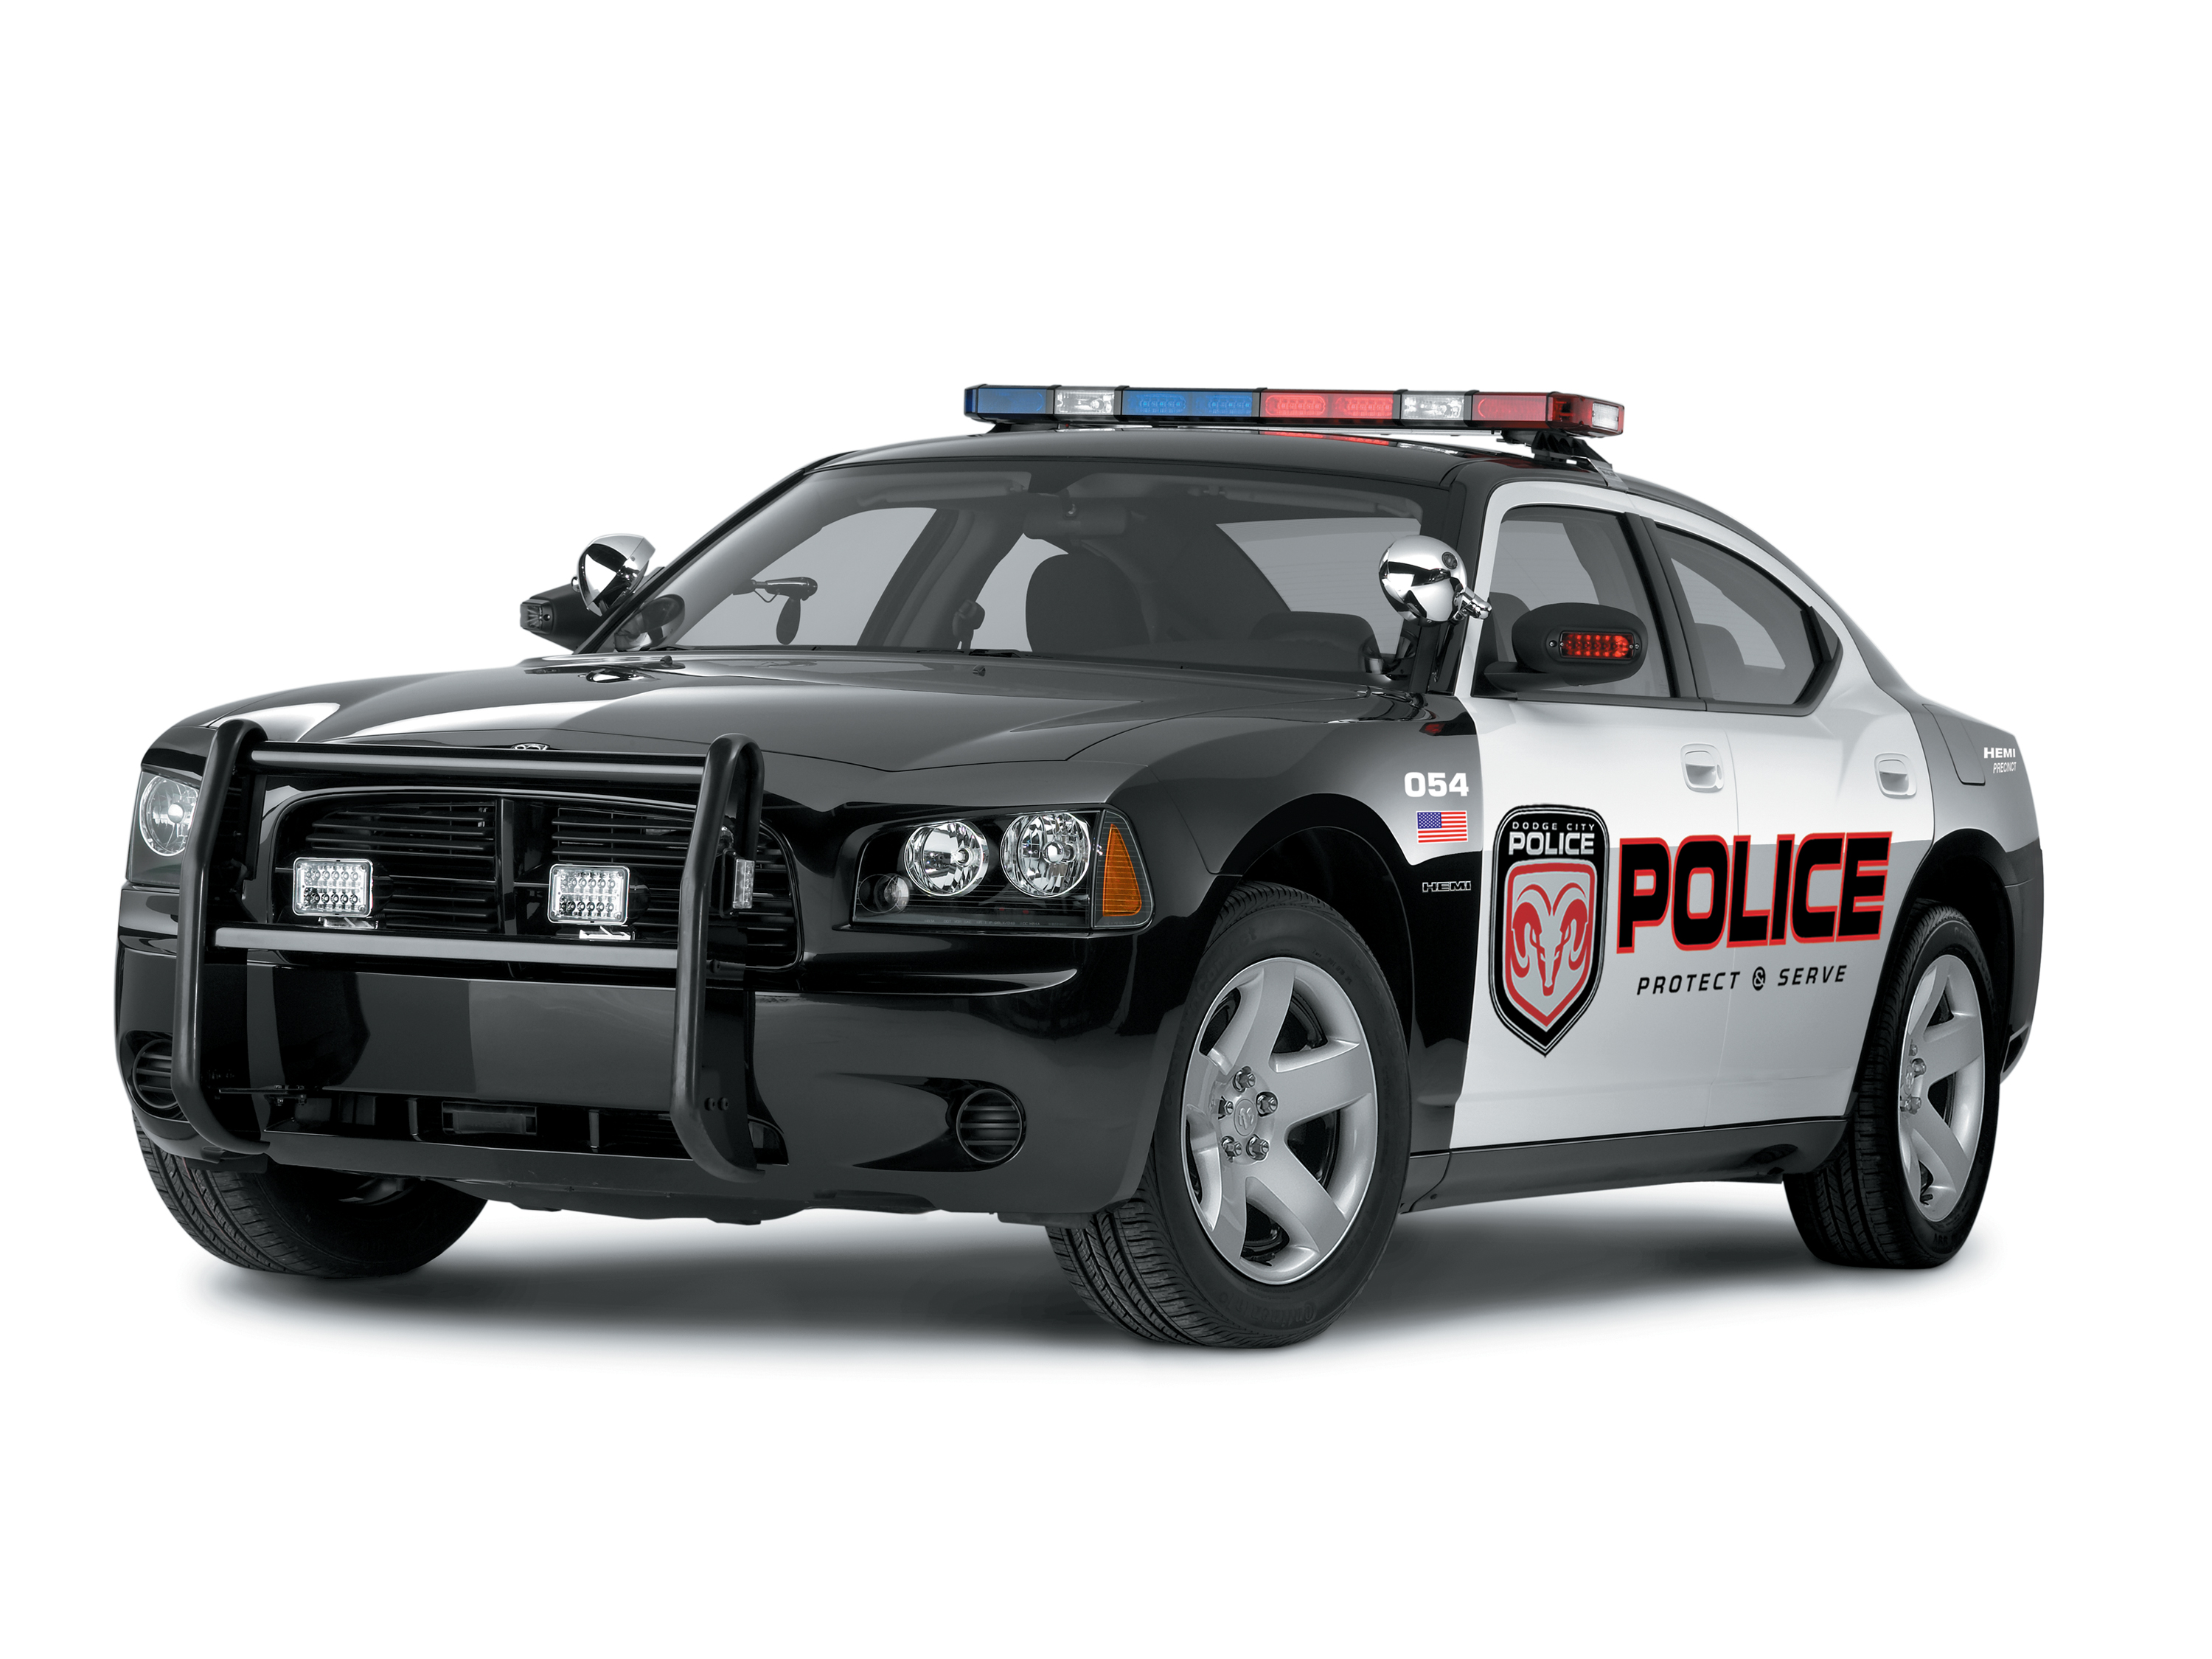 More Muscle Cars For Police Department News - Top Speed